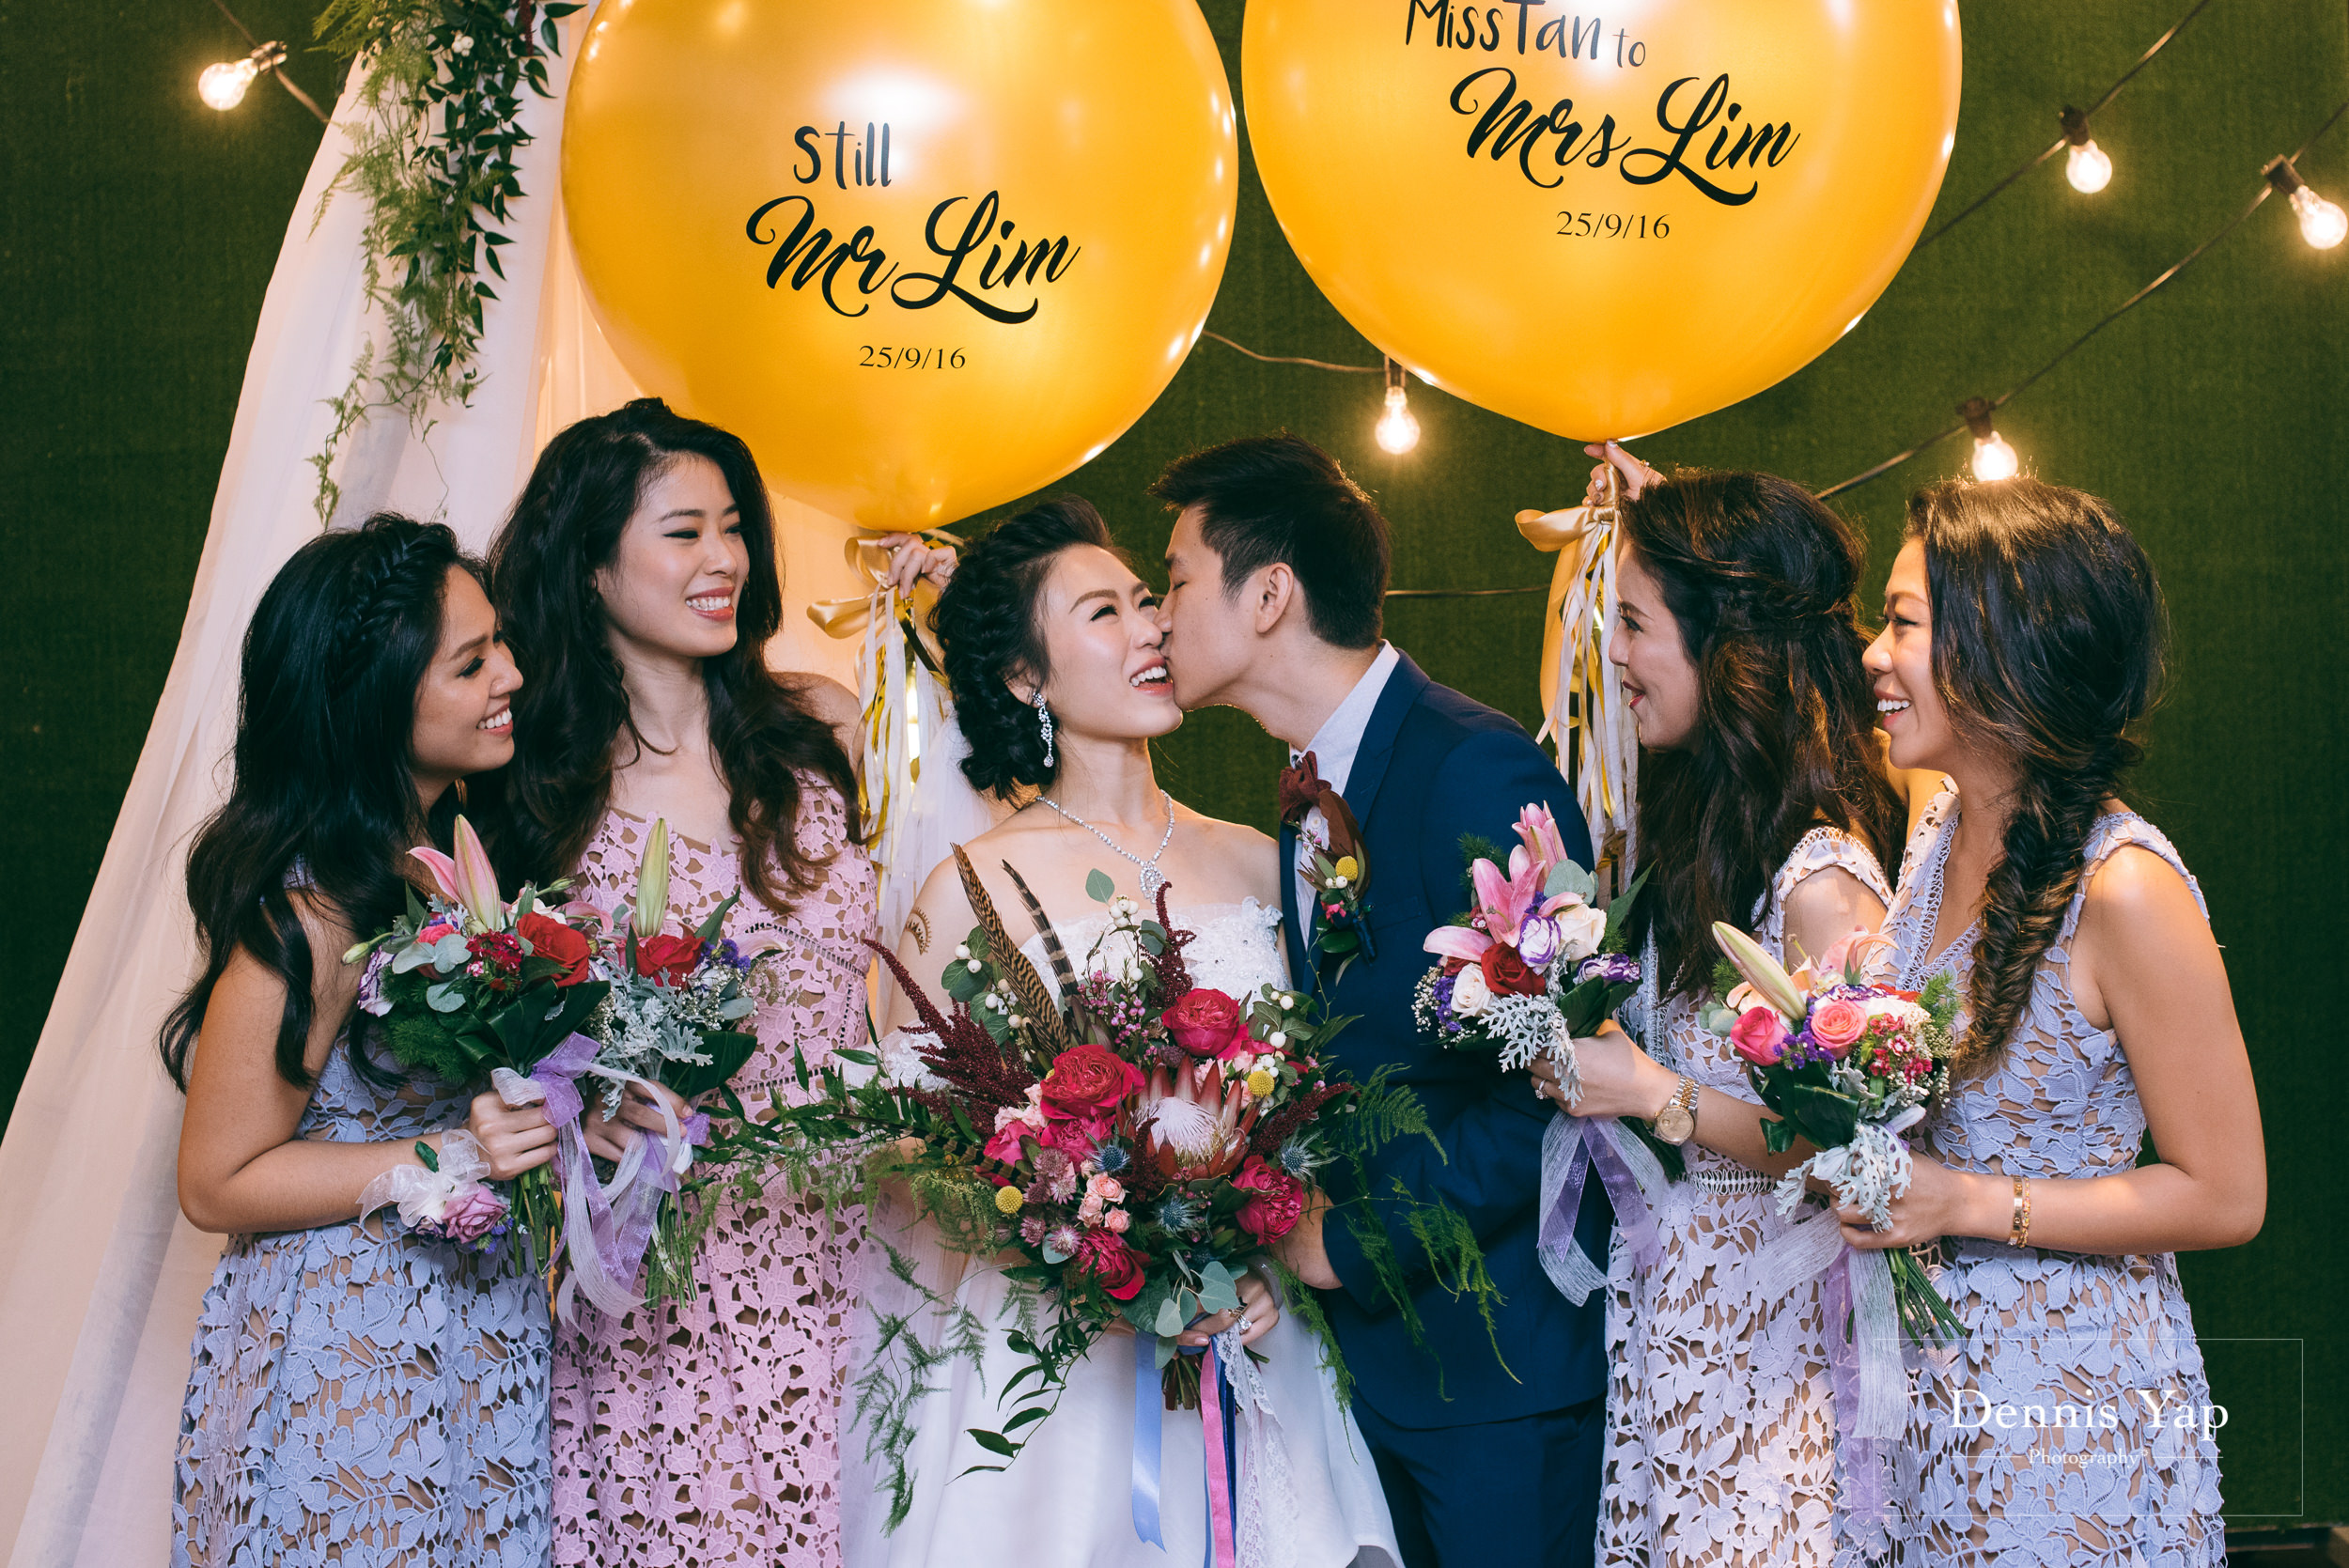 ser siang sze liang rom registration of marriage KL journal hotel dennis yap photography-29.jpg